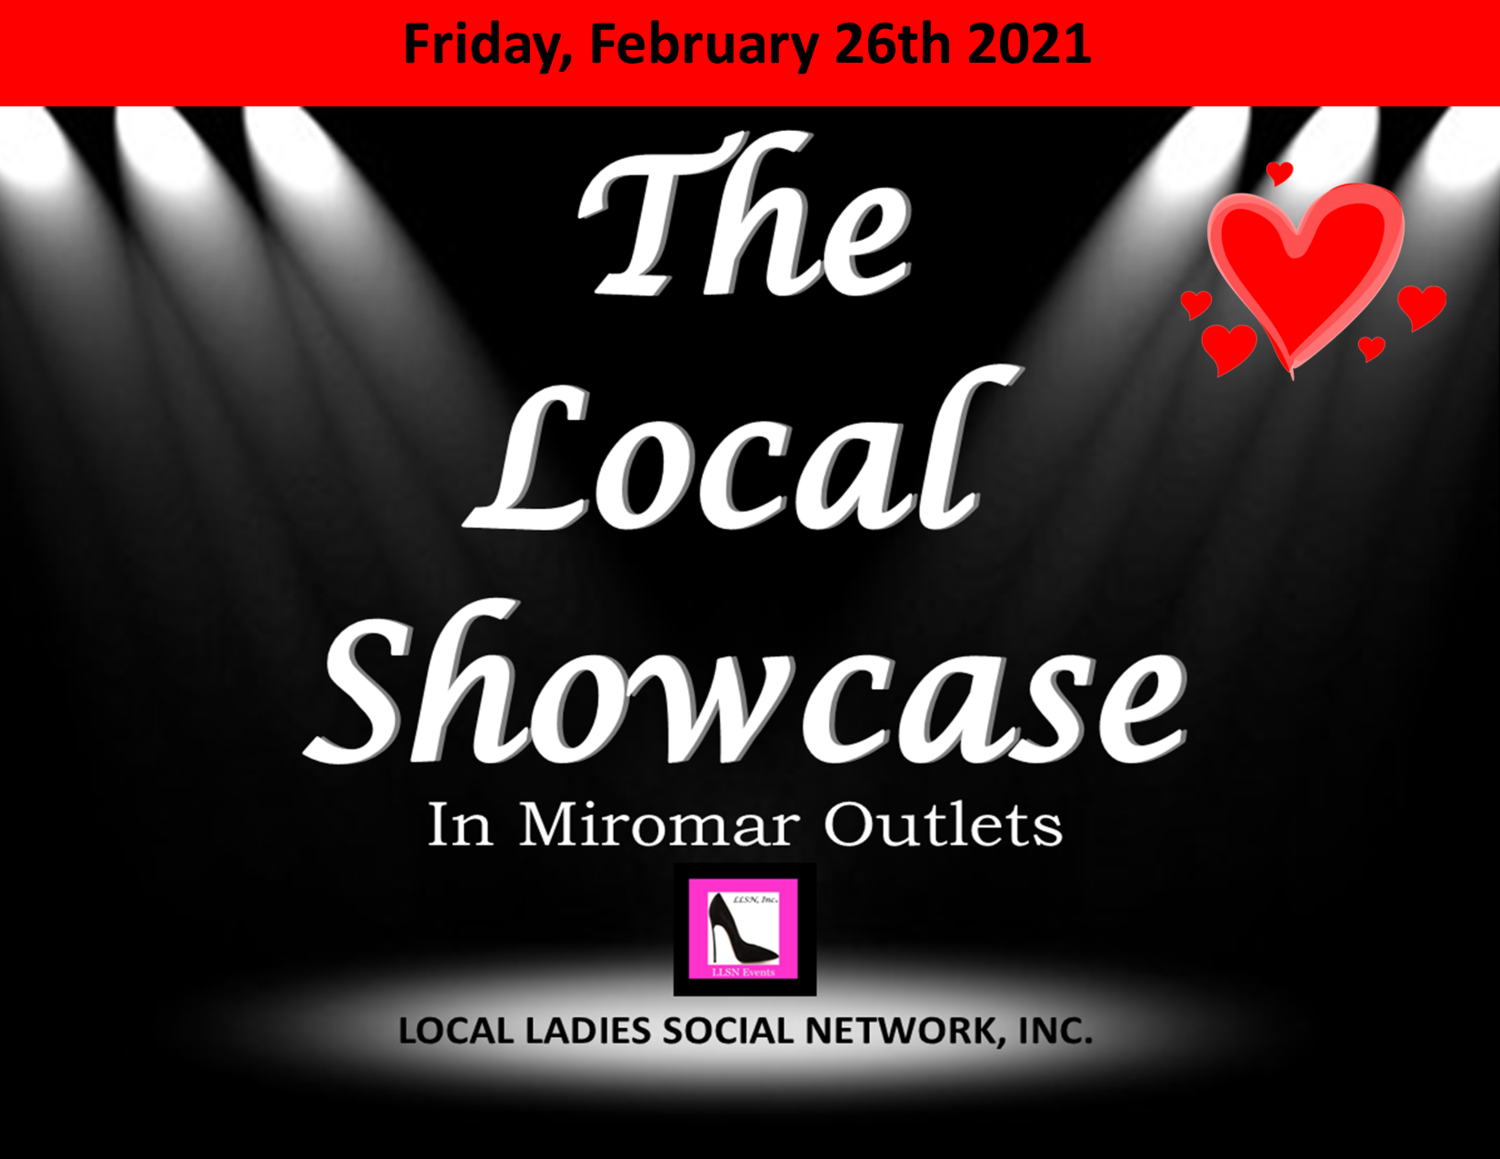 Friday, February 26th, 2021 11am-7pm